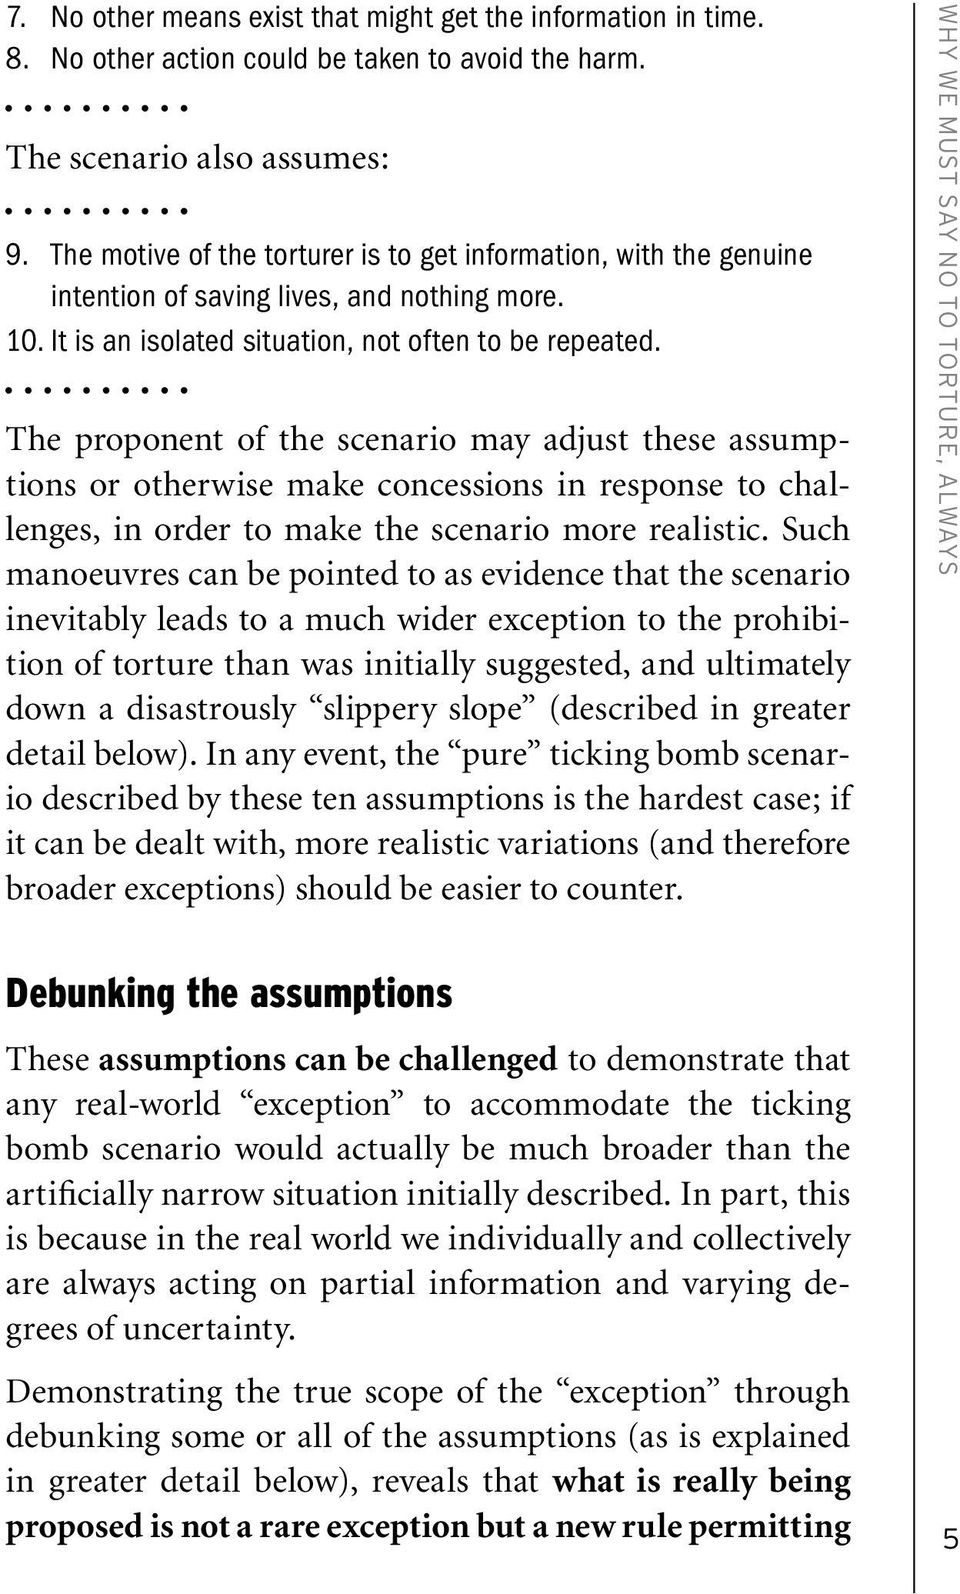 The proponent of the scenario may adjust these assumptions or otherwise make concessions in response to challenges, in order to make the scenario more realistic.